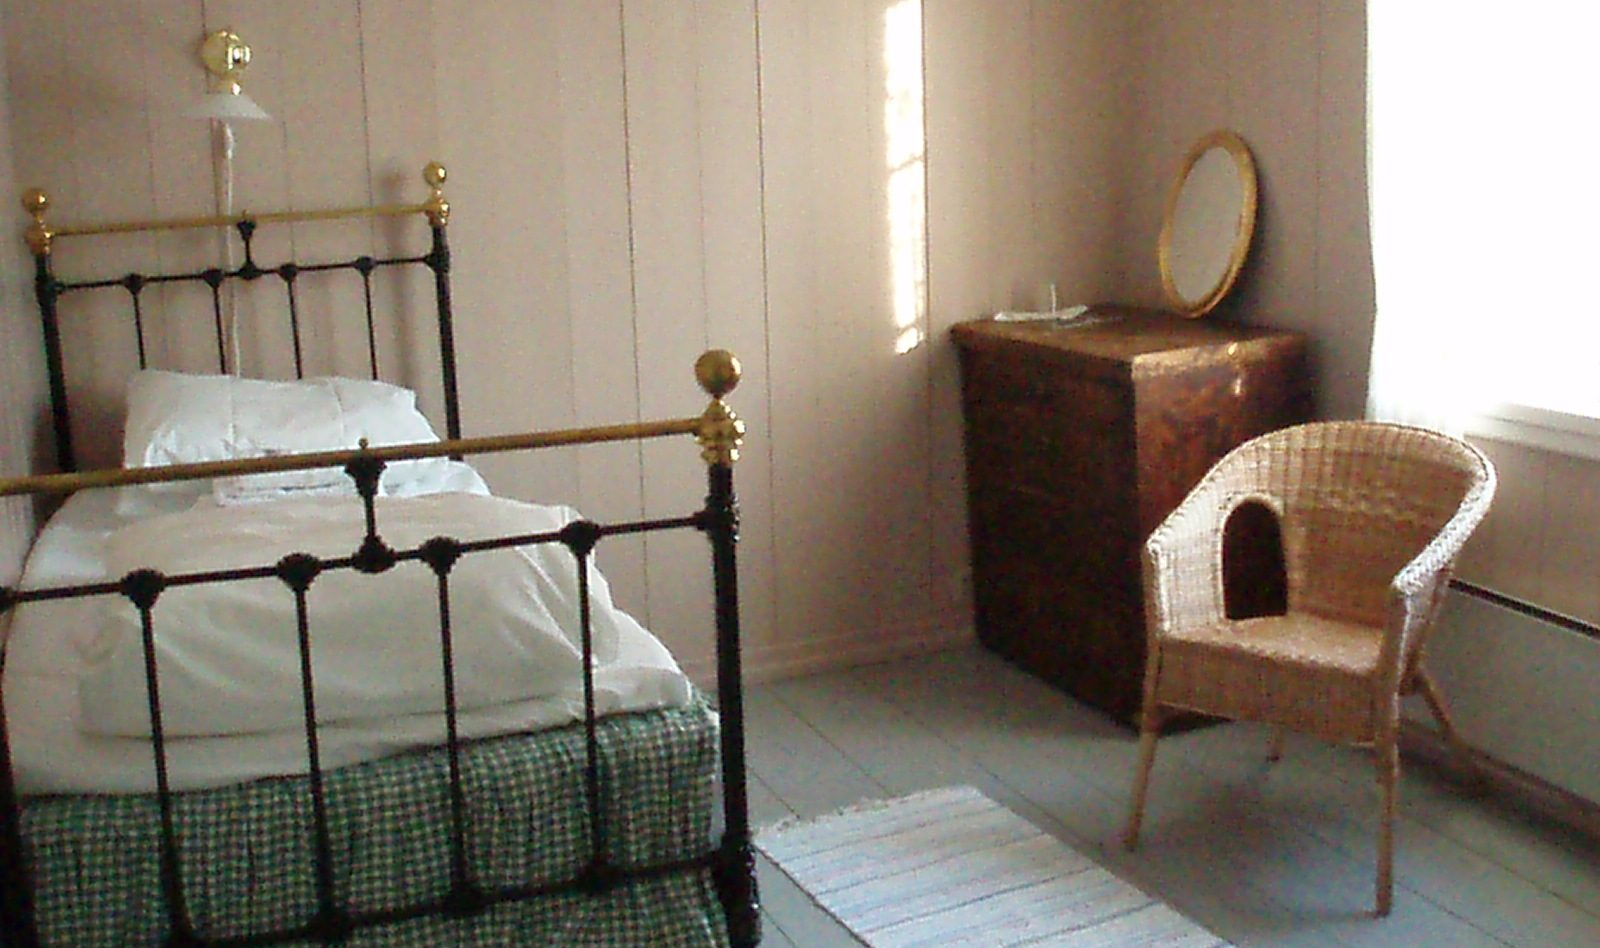 The bedrooms hold the cozy antique atmosphere.